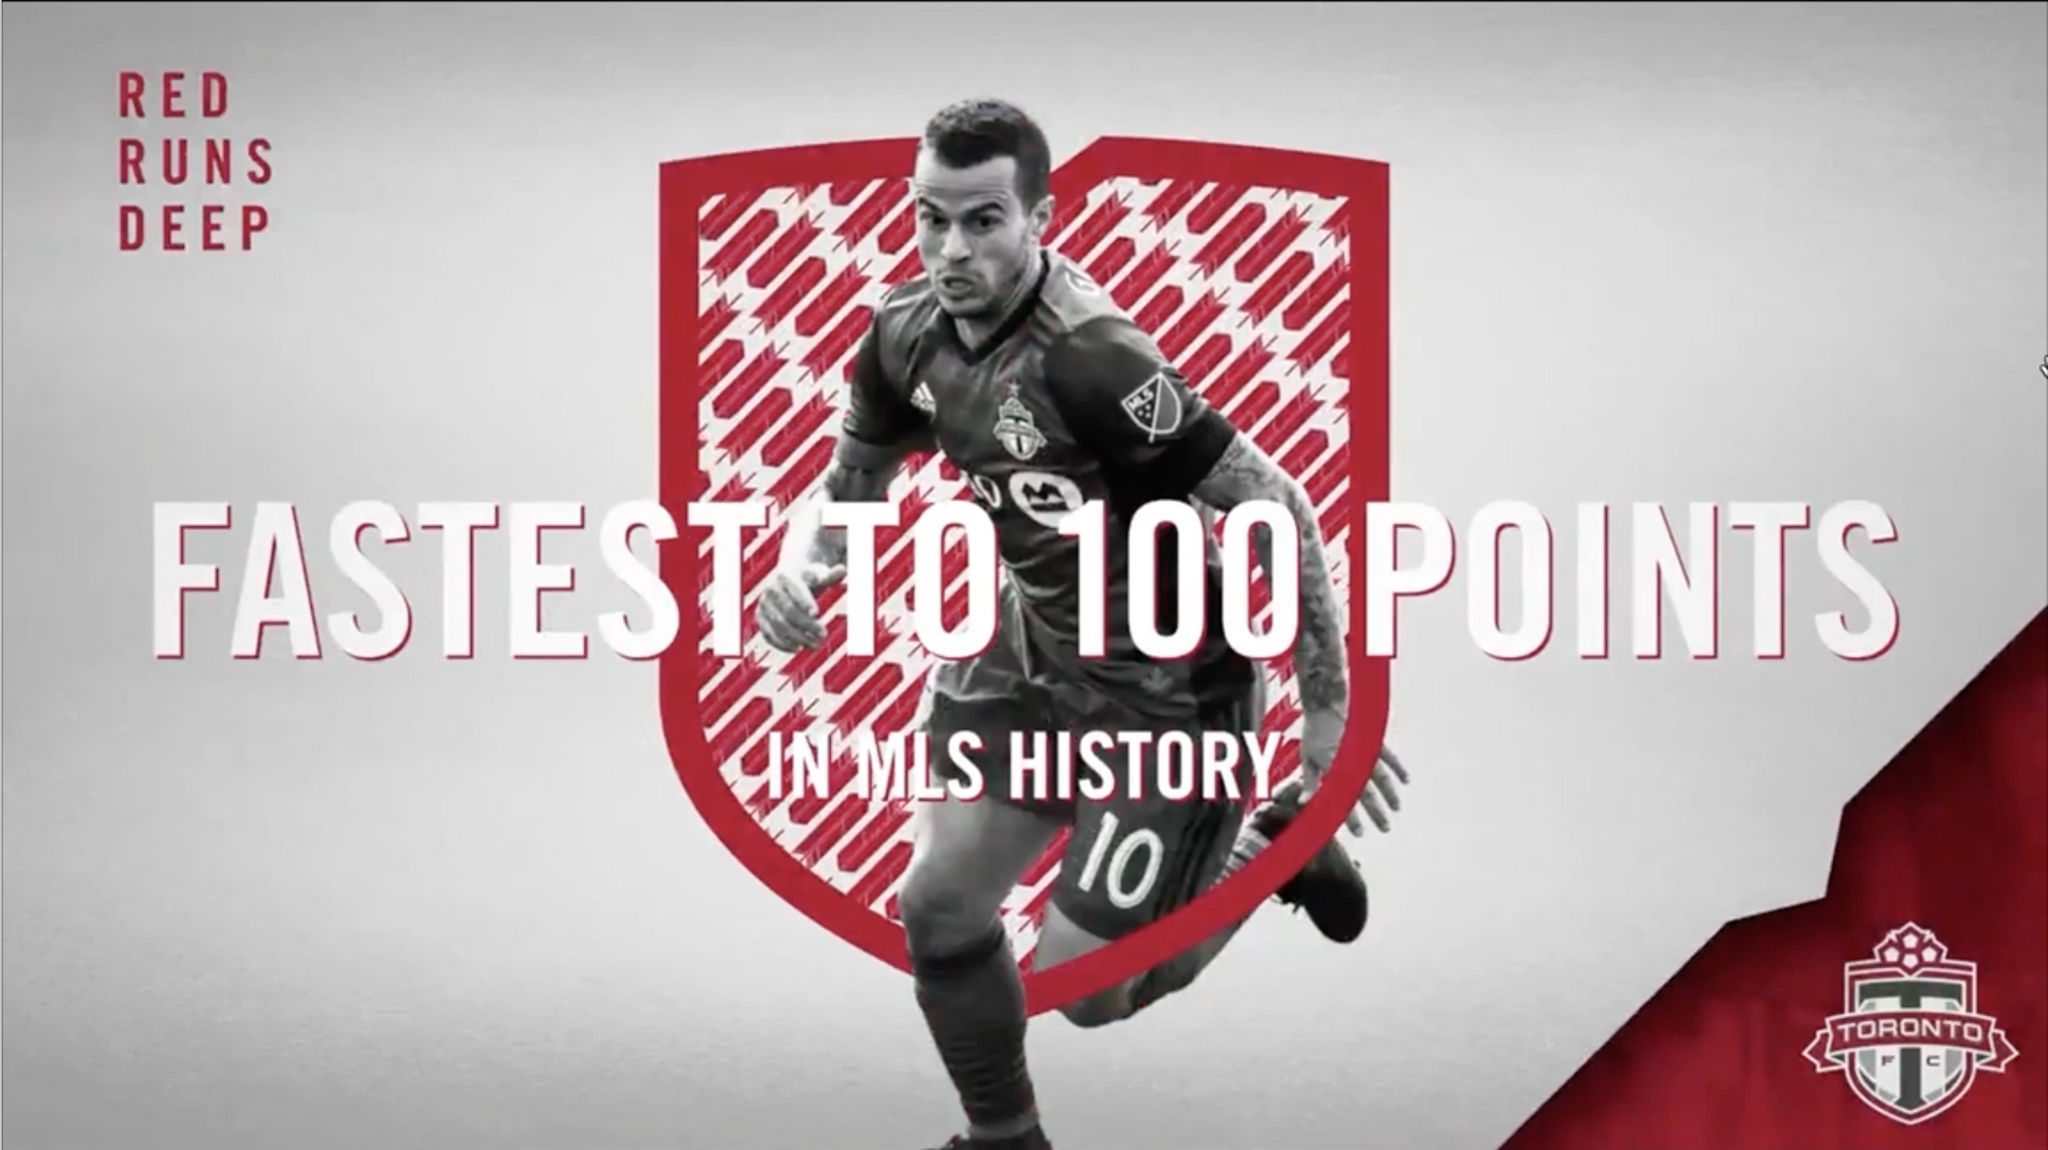 100 Point History